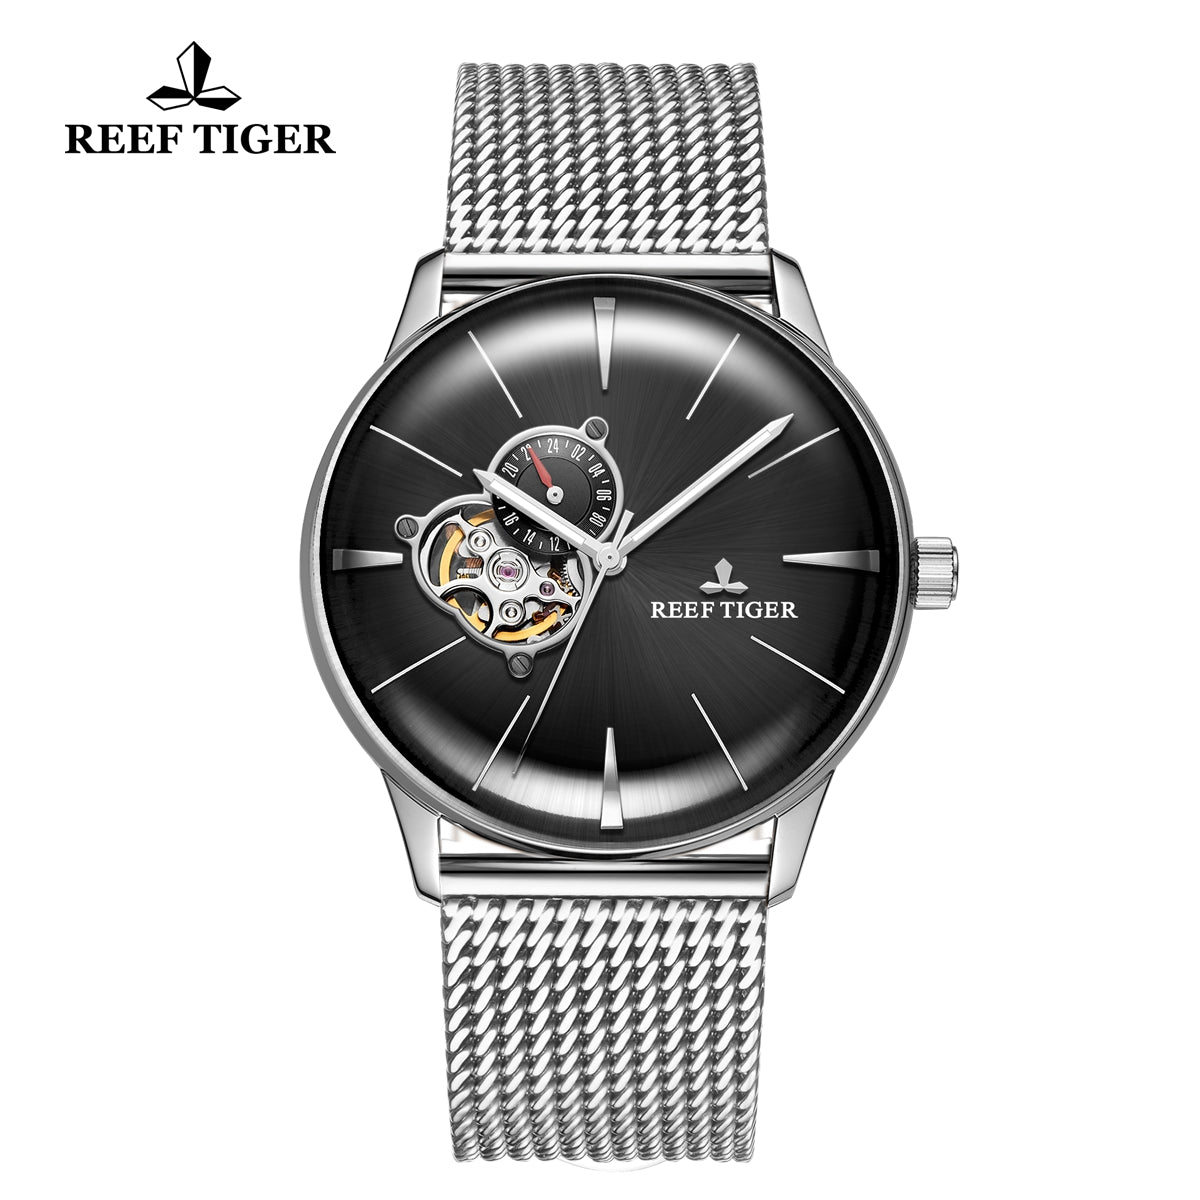 Reef Tiger Classic Glory Fashion Business Mens Black Dial Steel Strap Watch RGA8239-YBY